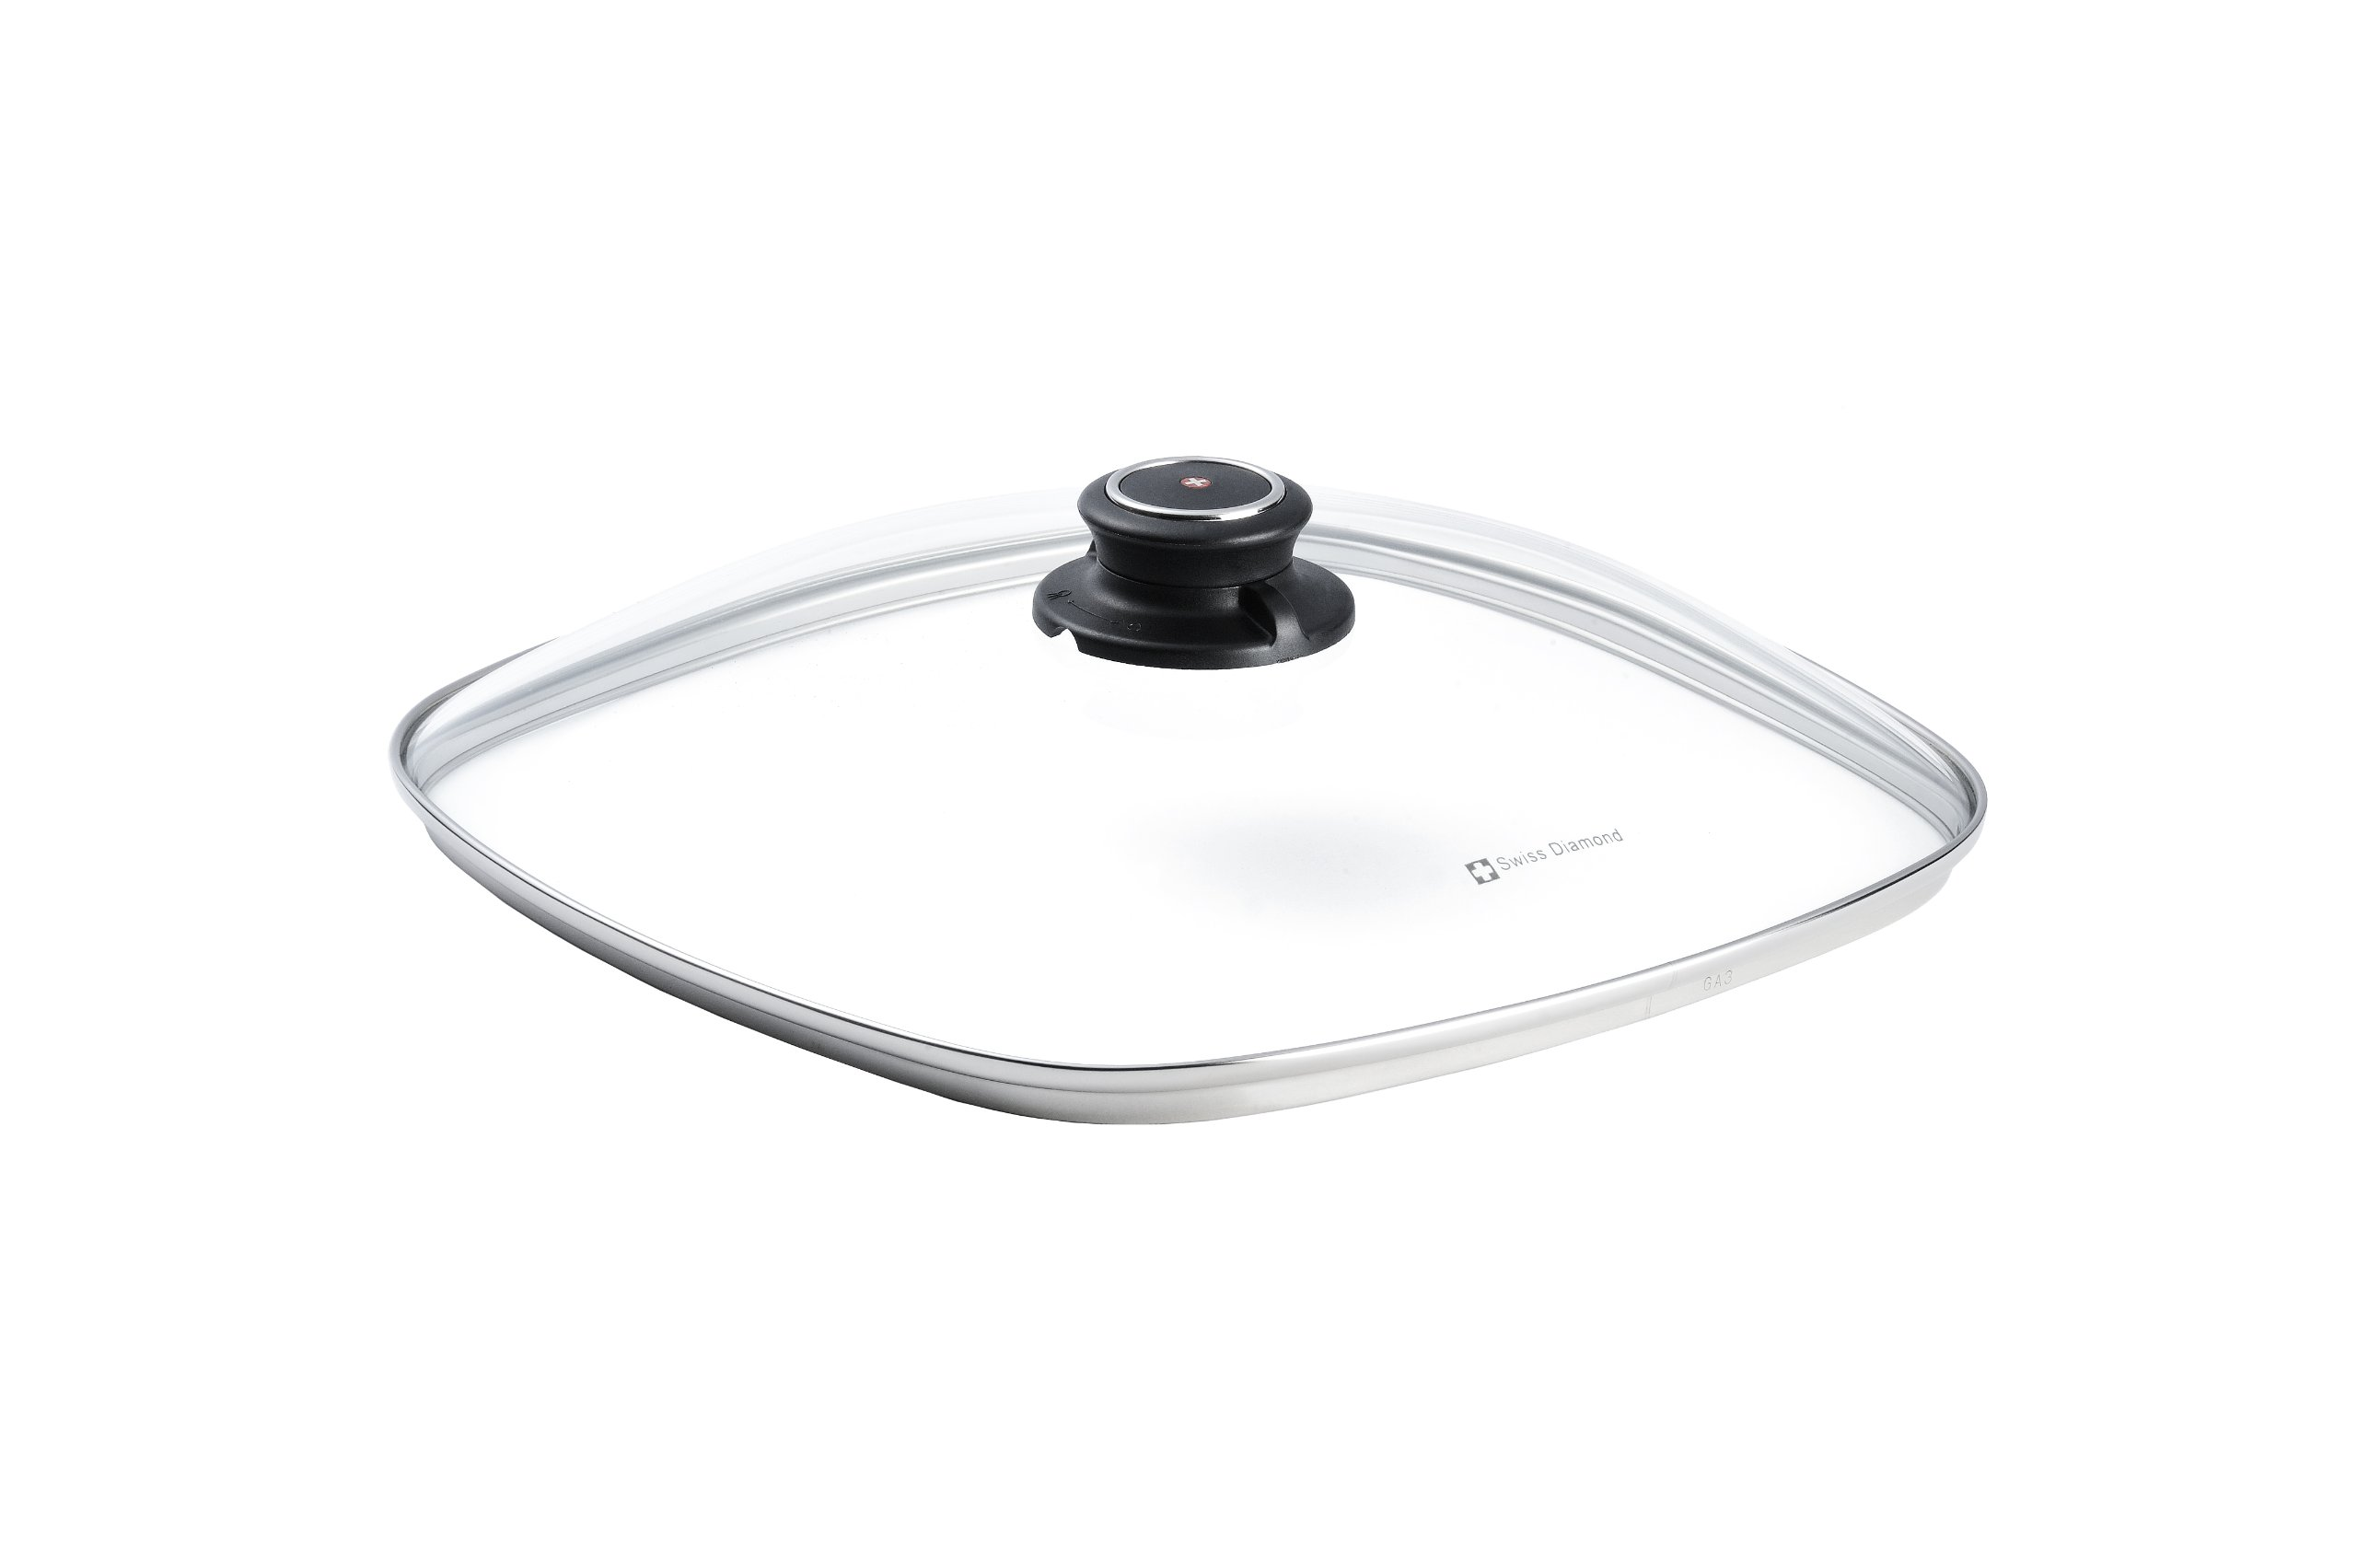 Swiss Diamond CS228 Square Tempered Glass Cookware Lid, 11 by 11-Inch